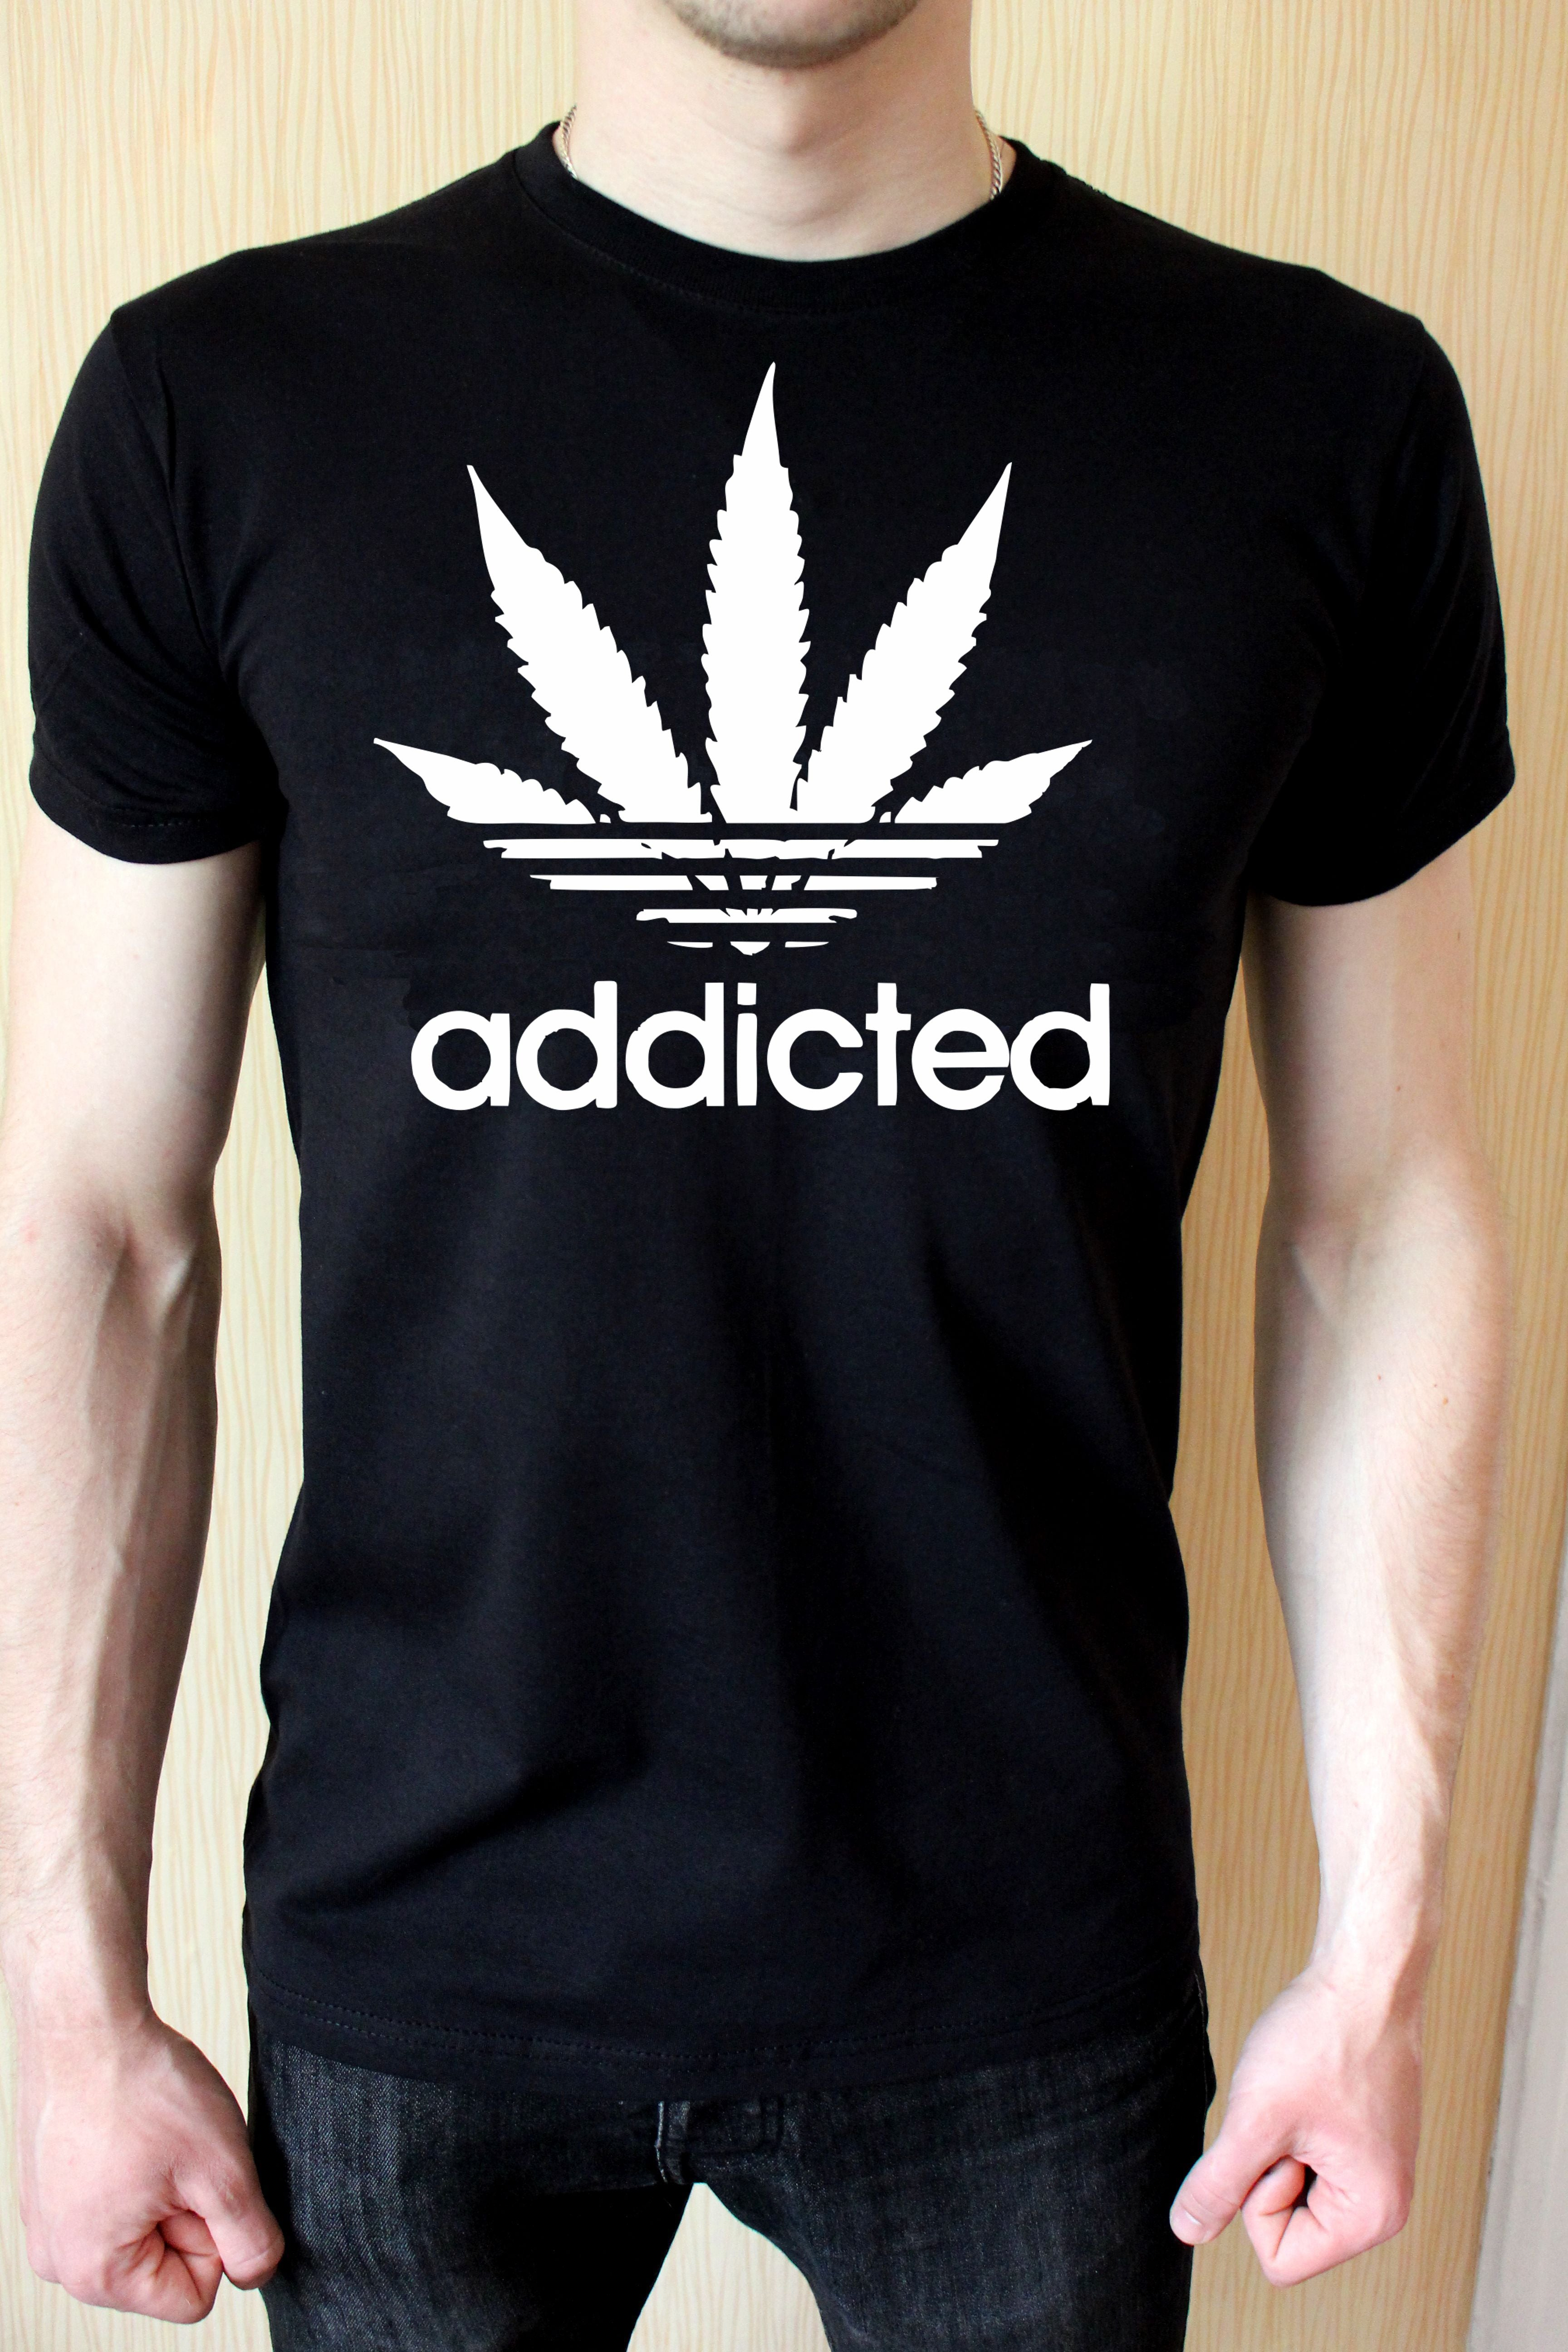 addicted T shirt-men woman T shirts-DiamondsKT